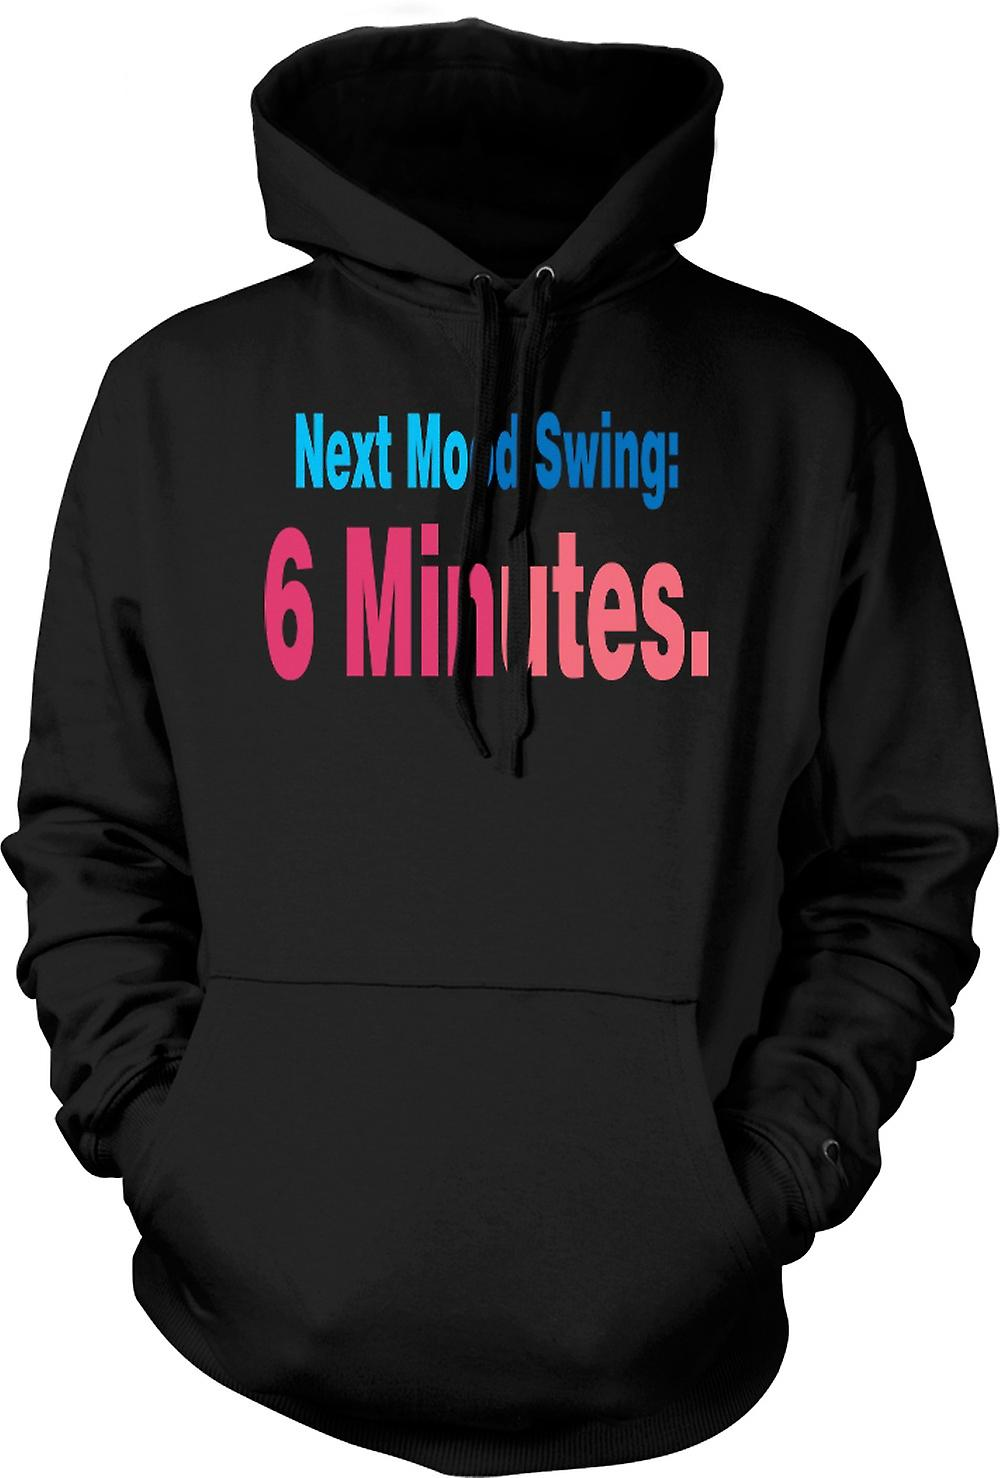 Mens Hoodie - Next Mood Swing: 6 Minutes